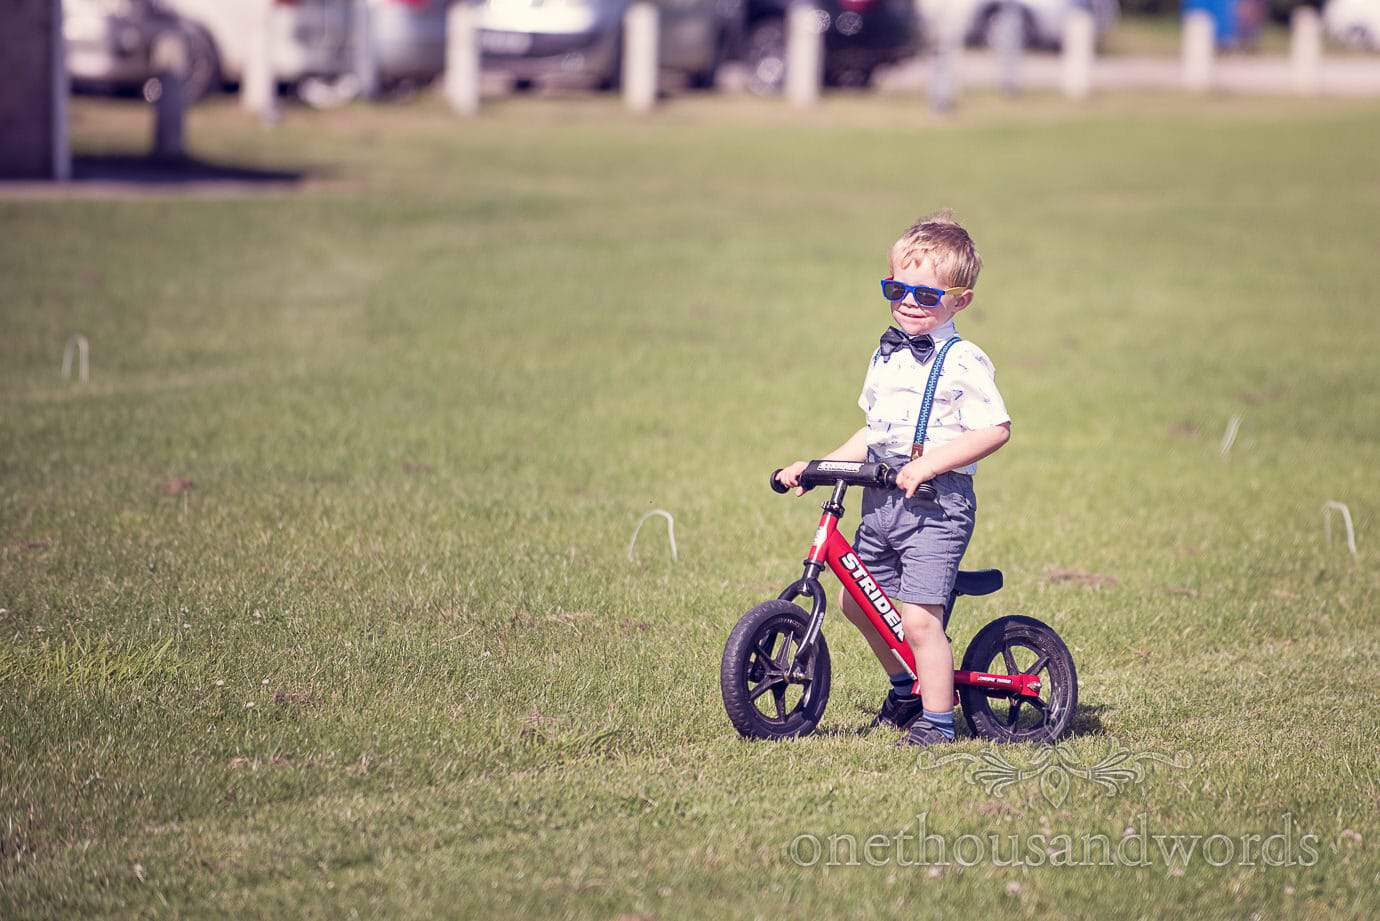 Child wedding guest in bow tie and braces rides bike at drinks reception